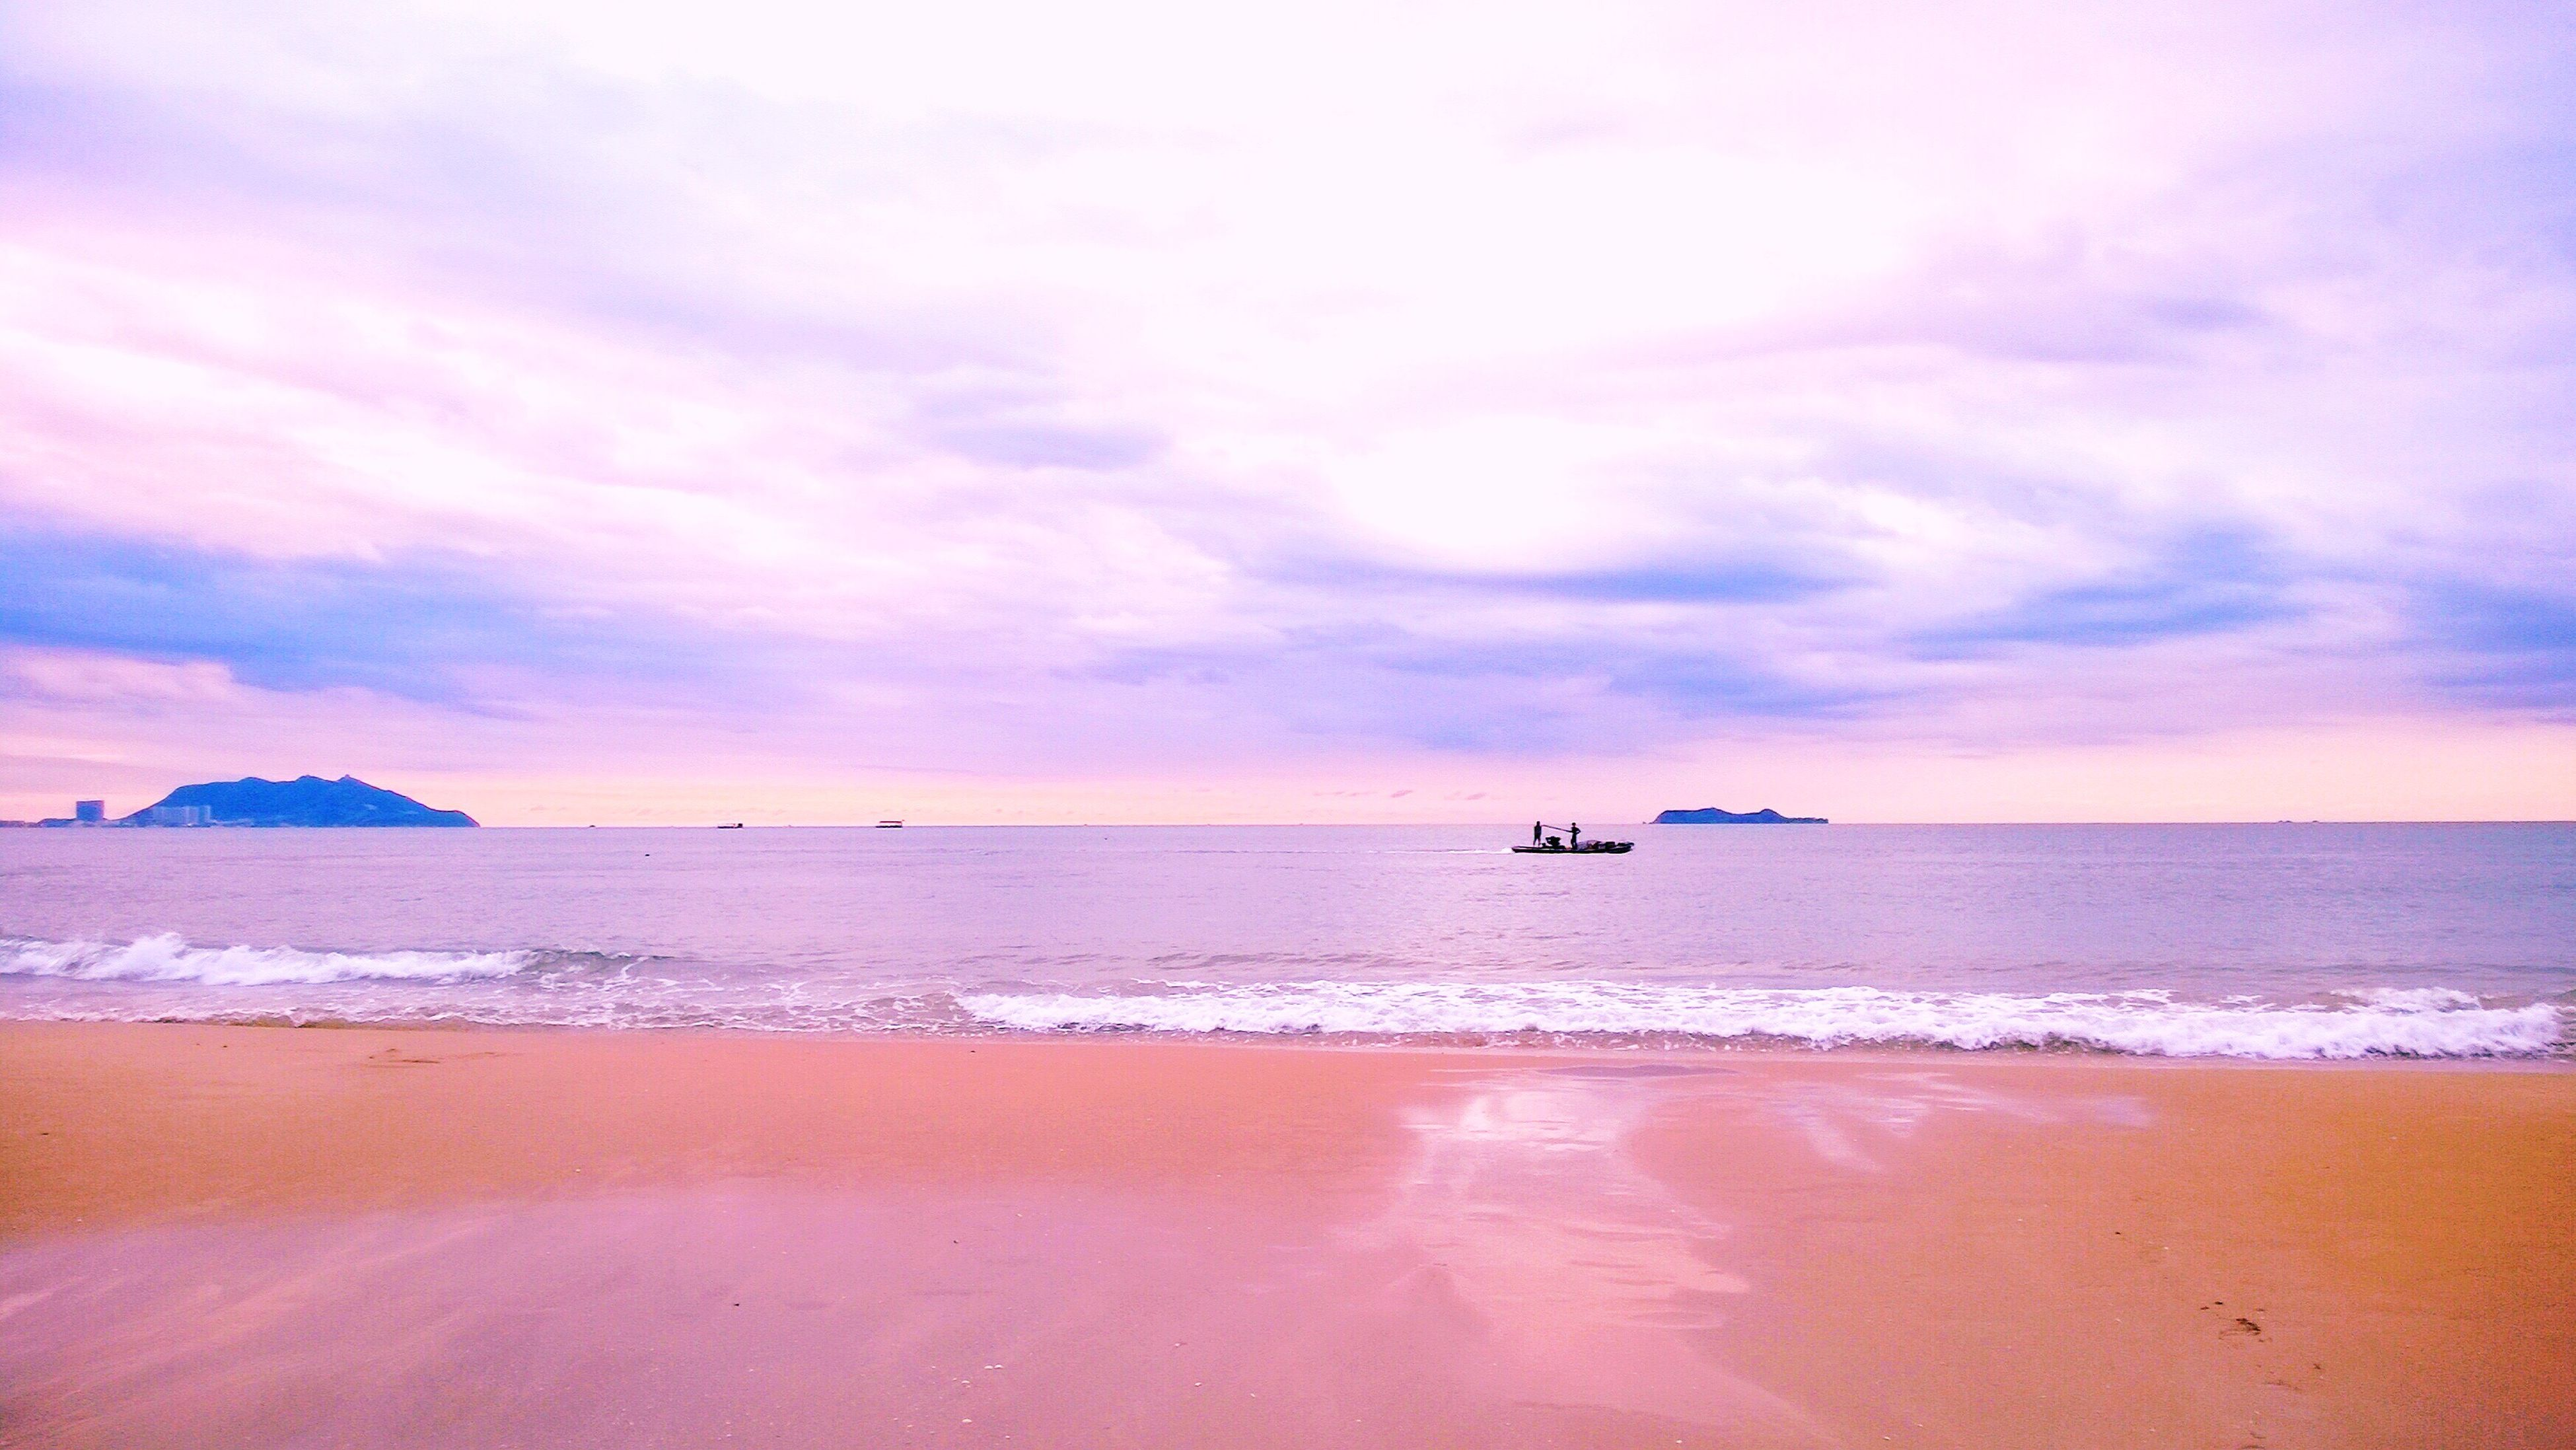 sea, horizon over water, water, beach, sky, scenics, tranquil scene, beauty in nature, tranquility, shore, cloud - sky, sunset, sand, nature, idyllic, cloud, nautical vessel, cloudy, wave, transportation